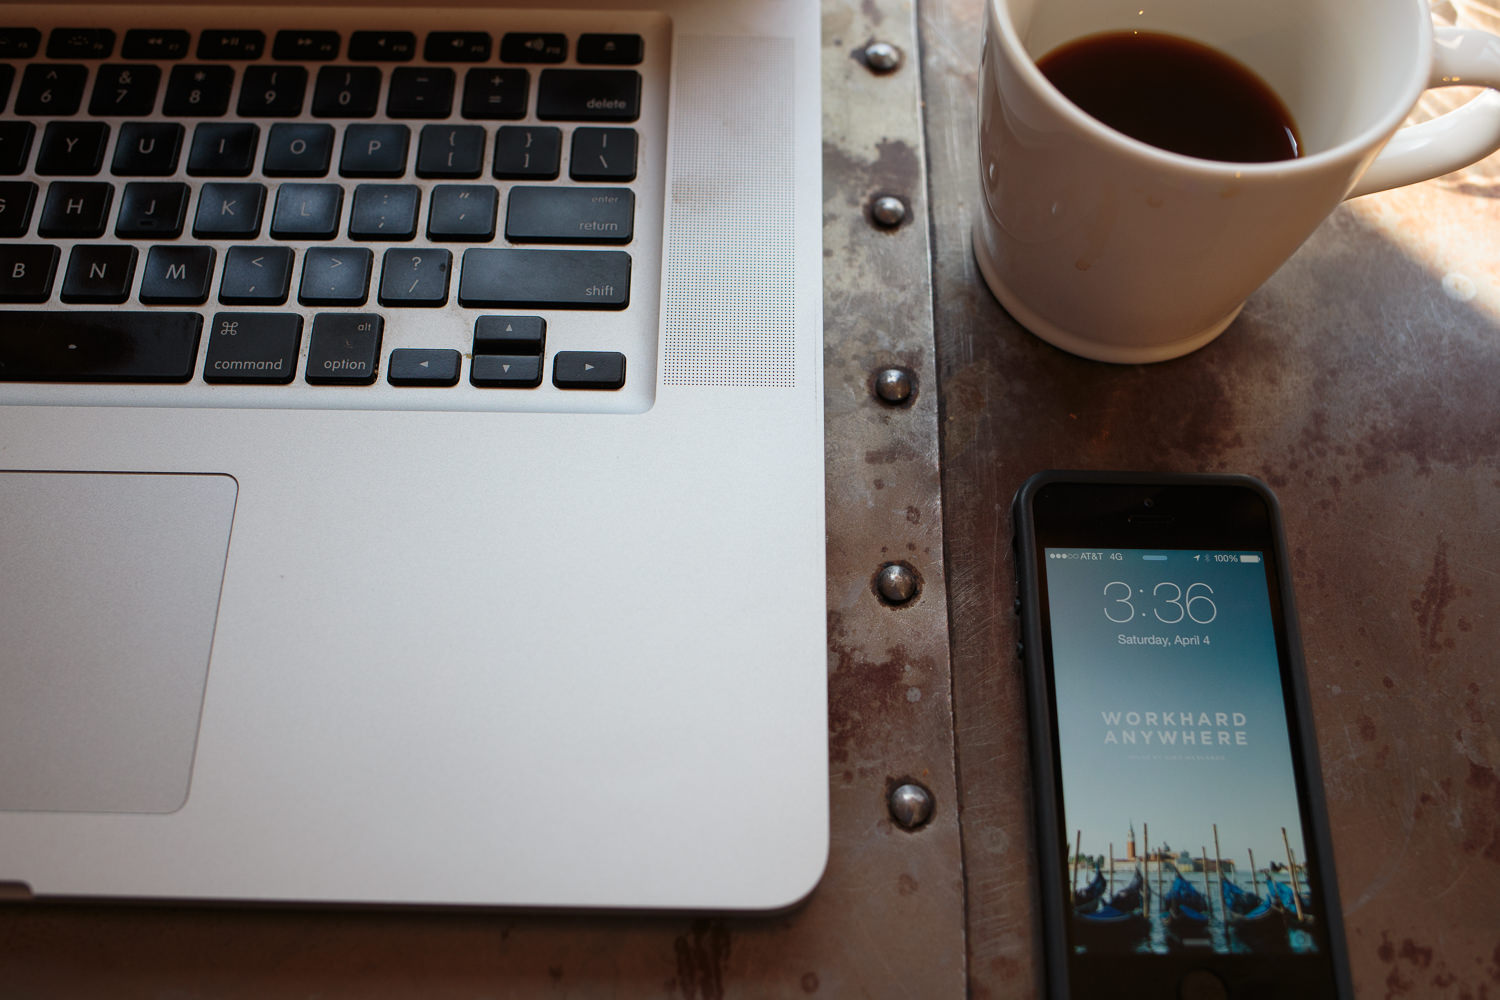 phone and coffee on the table Work Hard Anywhere wallpaper